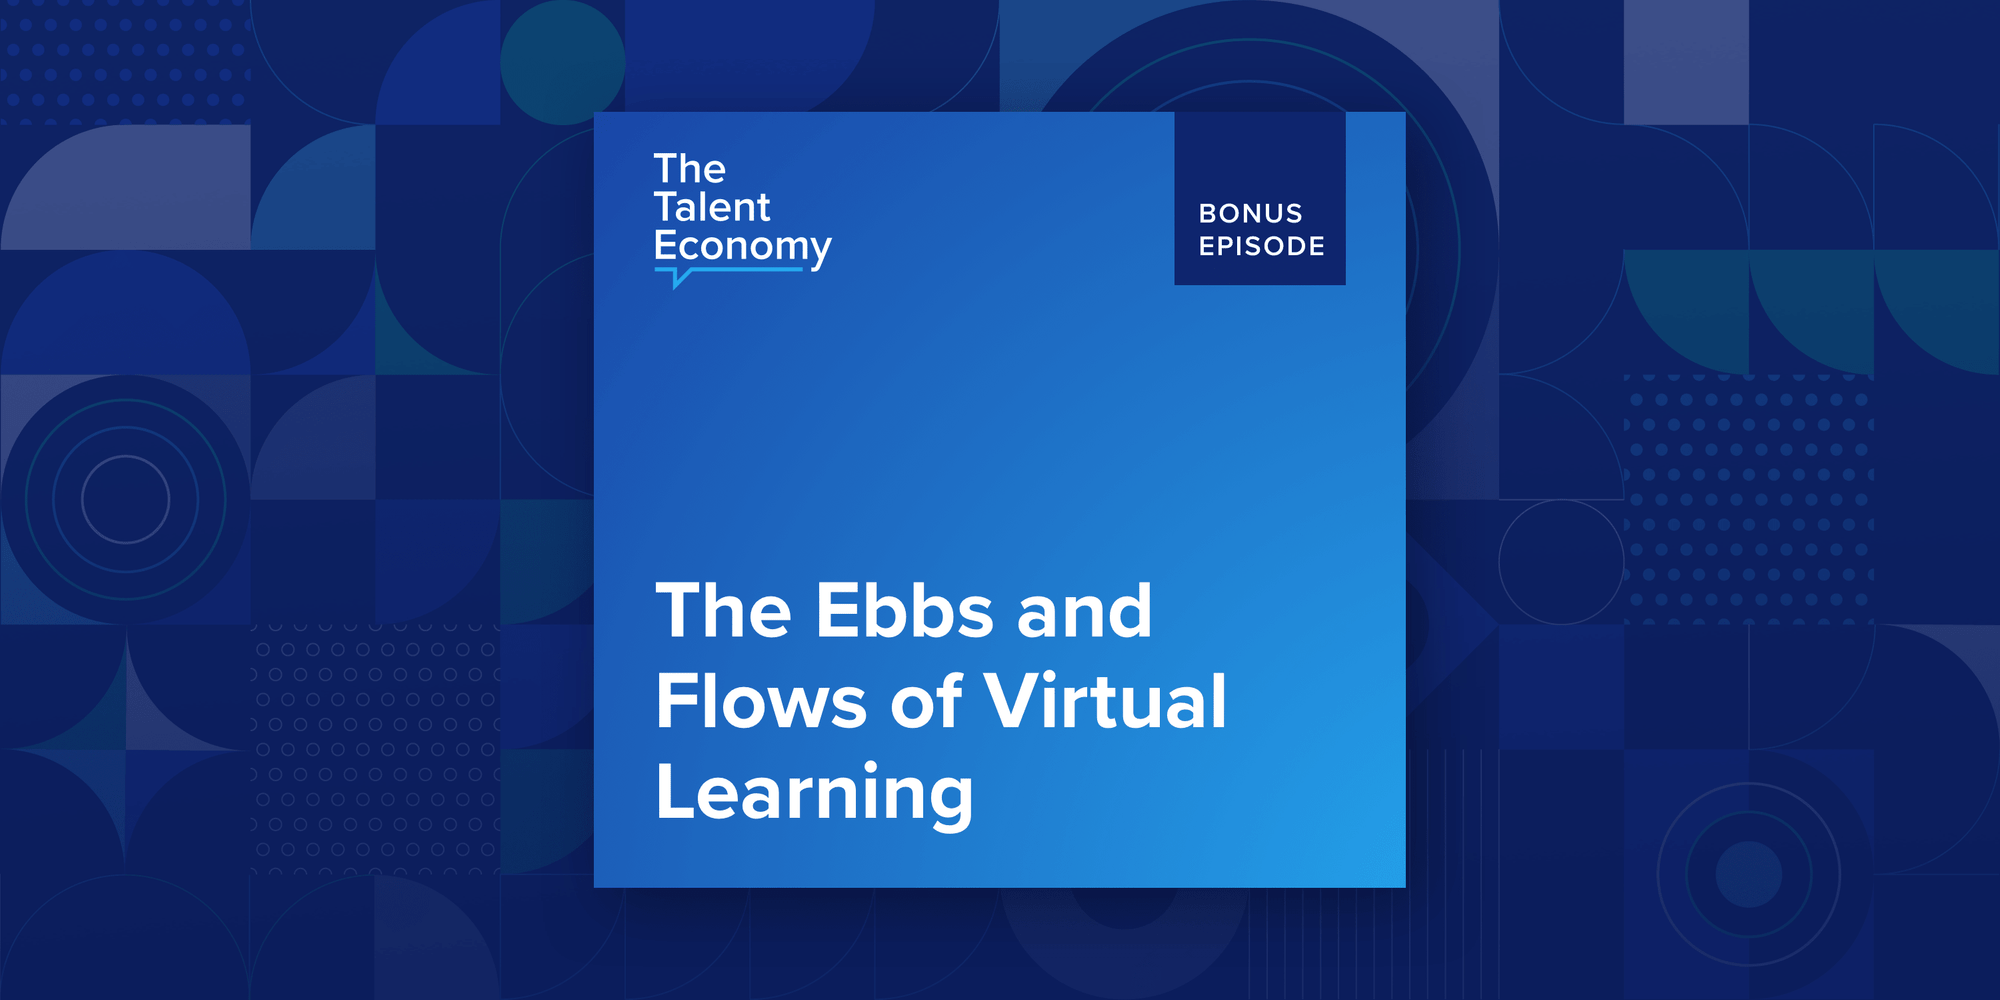 The Ebbs and Flows of Virtual Learning